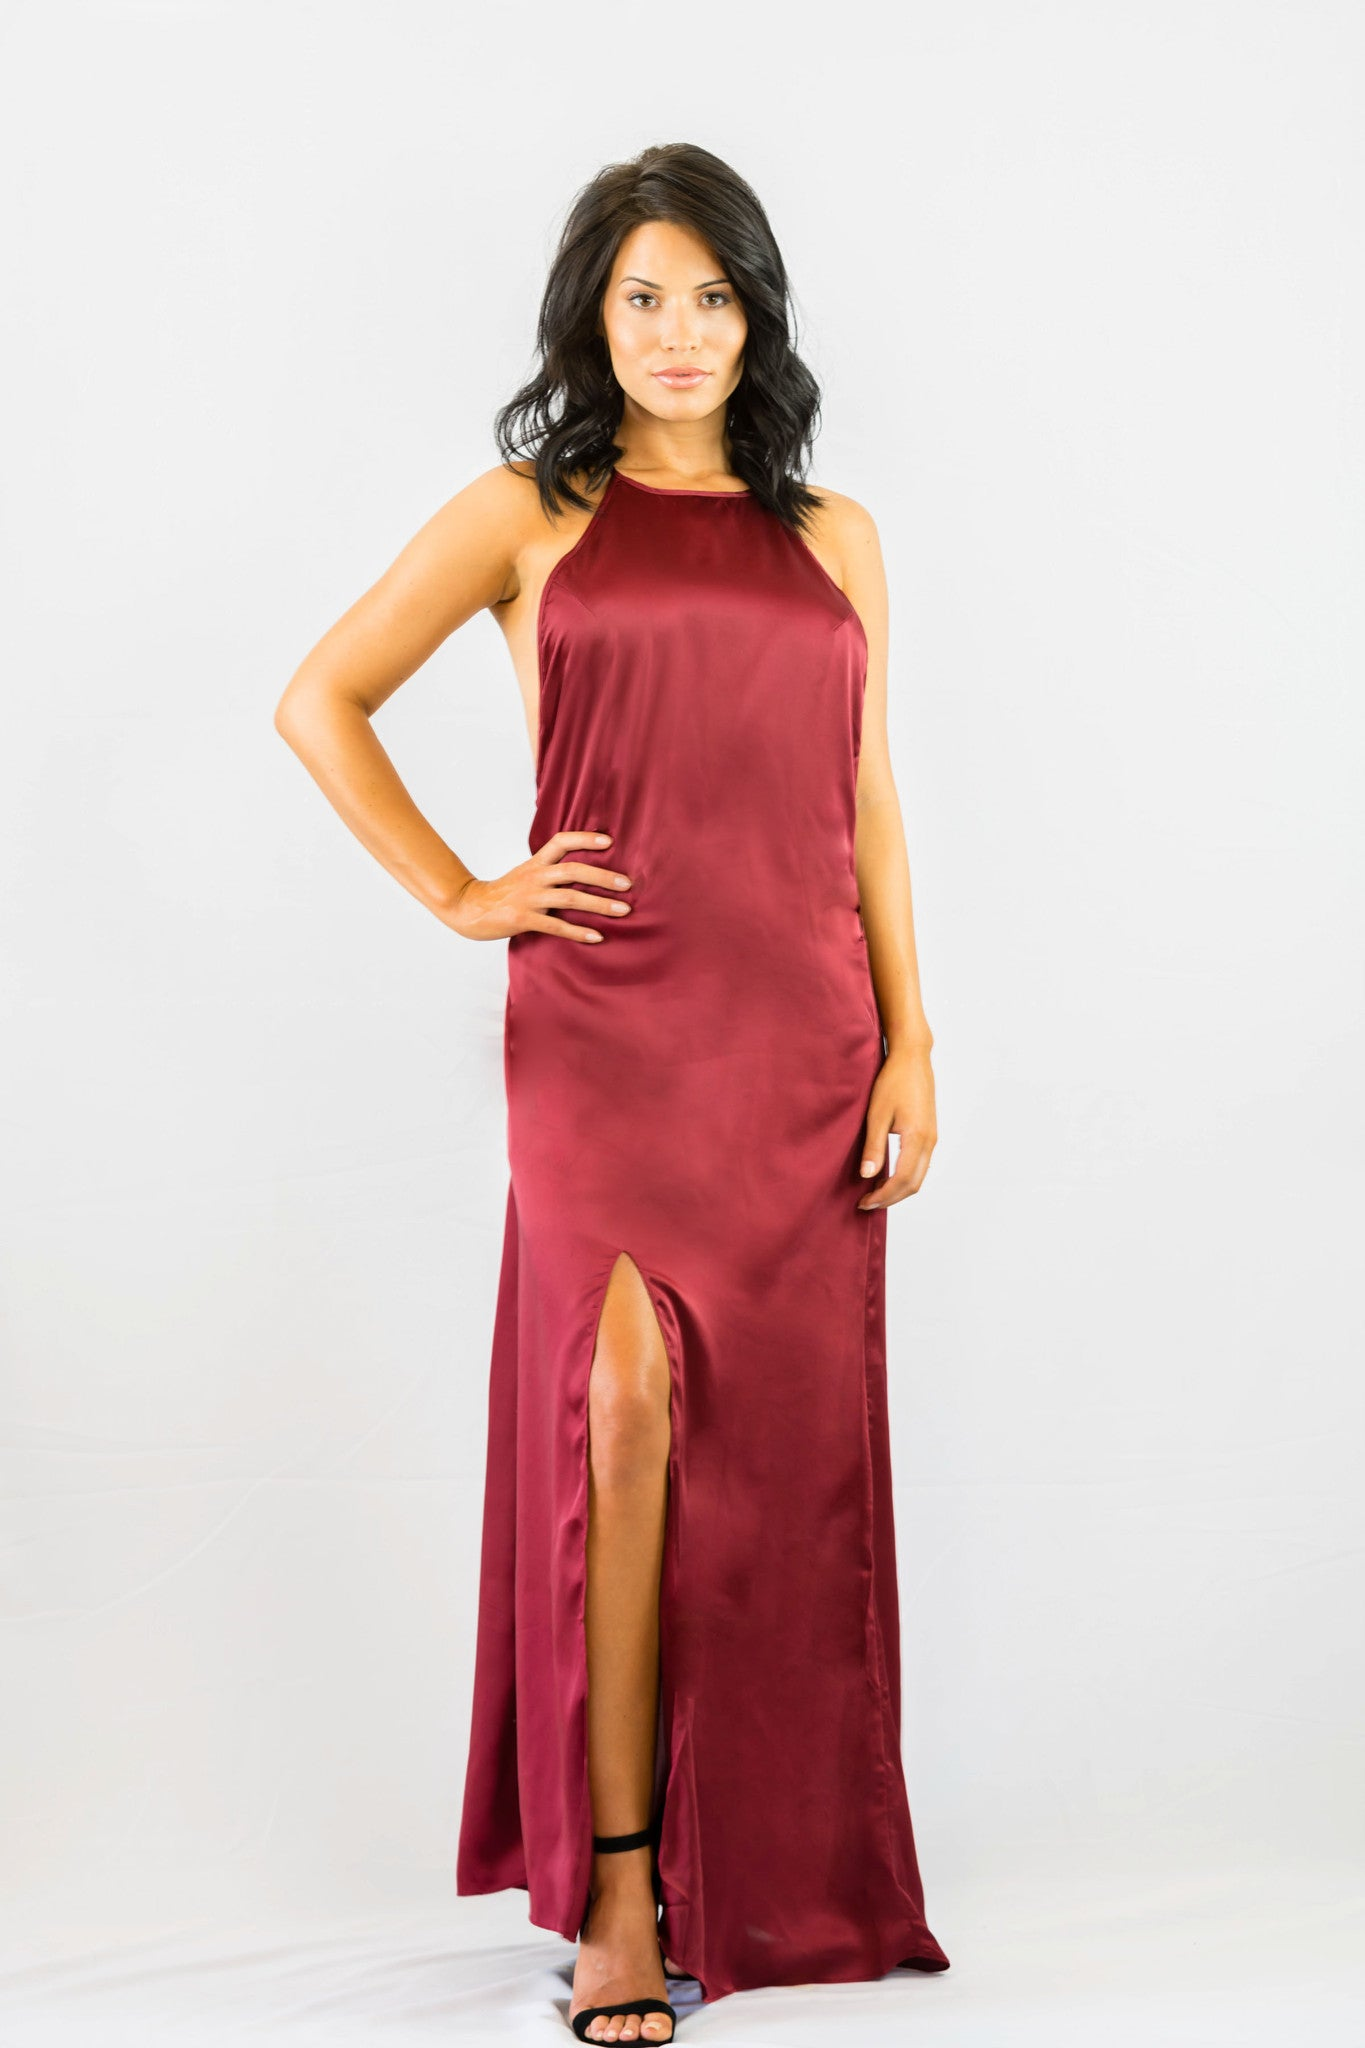 WYLDR Elegance Maxi Dress - Wine - DRESSES - WYLDR - Free Vibrationz - 4